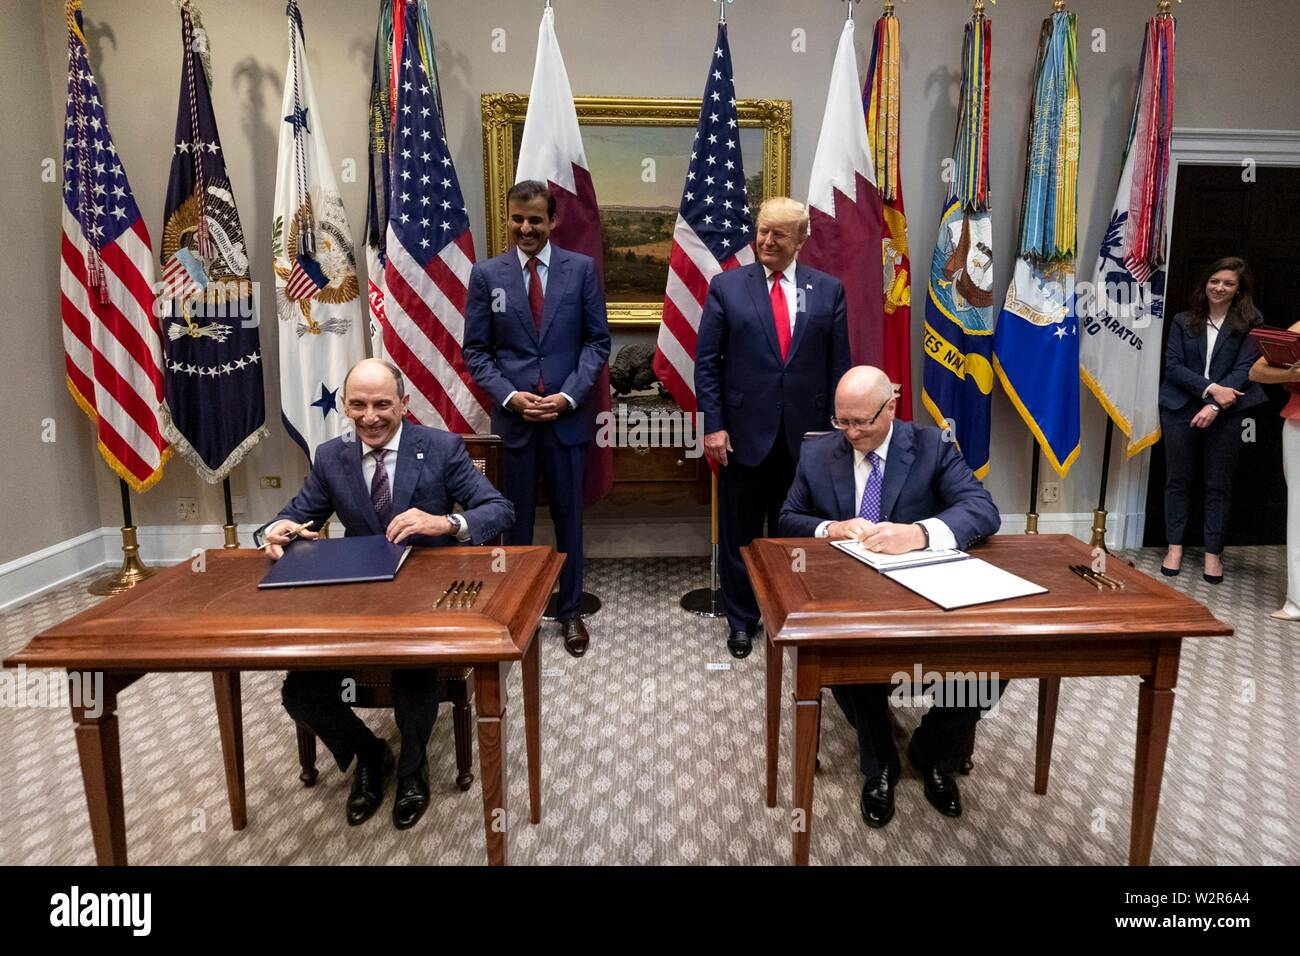 U.S President Donald Trump, stands next to the Emir of Qatar, Tamin bin Hamad Al Thani as they watch the signing of a commercial agreement in the Roosevelt Room of the White House July 9, 2019 in Washington, DC. - Stock Image